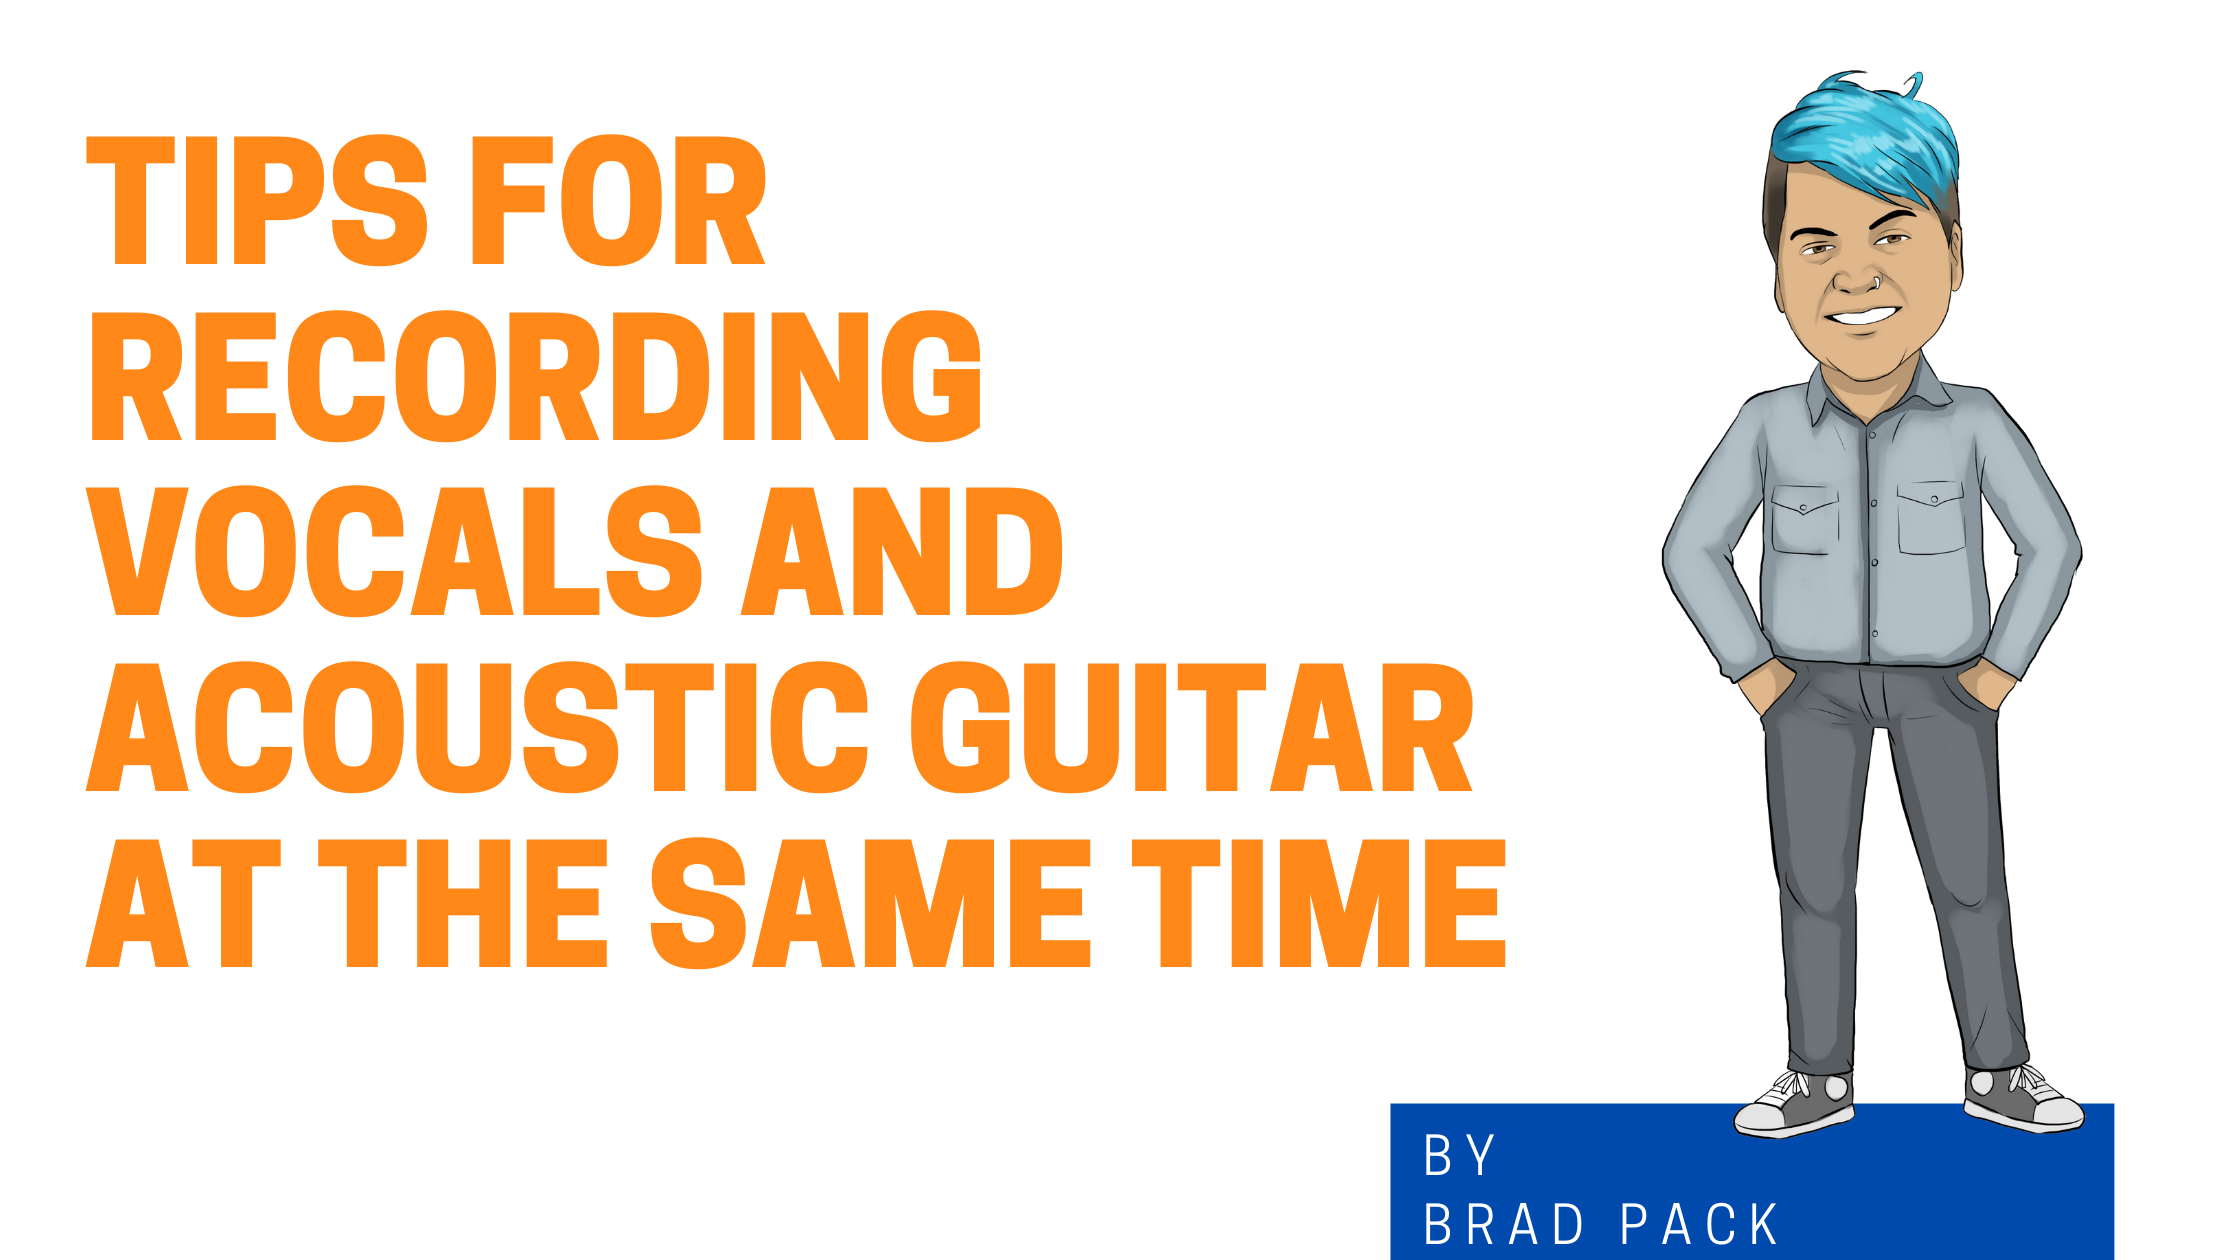 Tips for Recording Vocals and Acoustic Guitar at the Same Time graphic